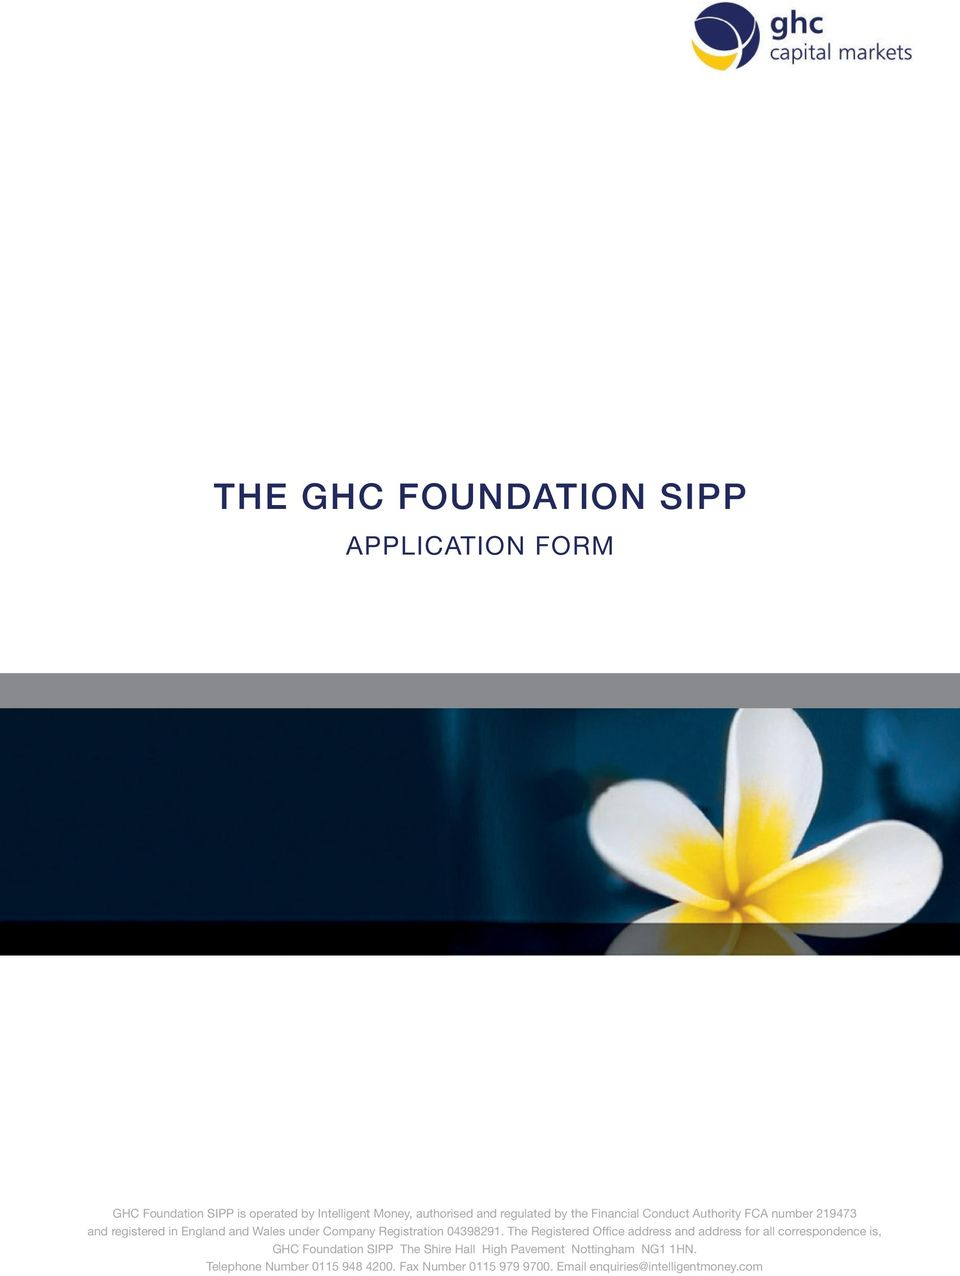 THE GHC FOUNDATION SIPP - PDF